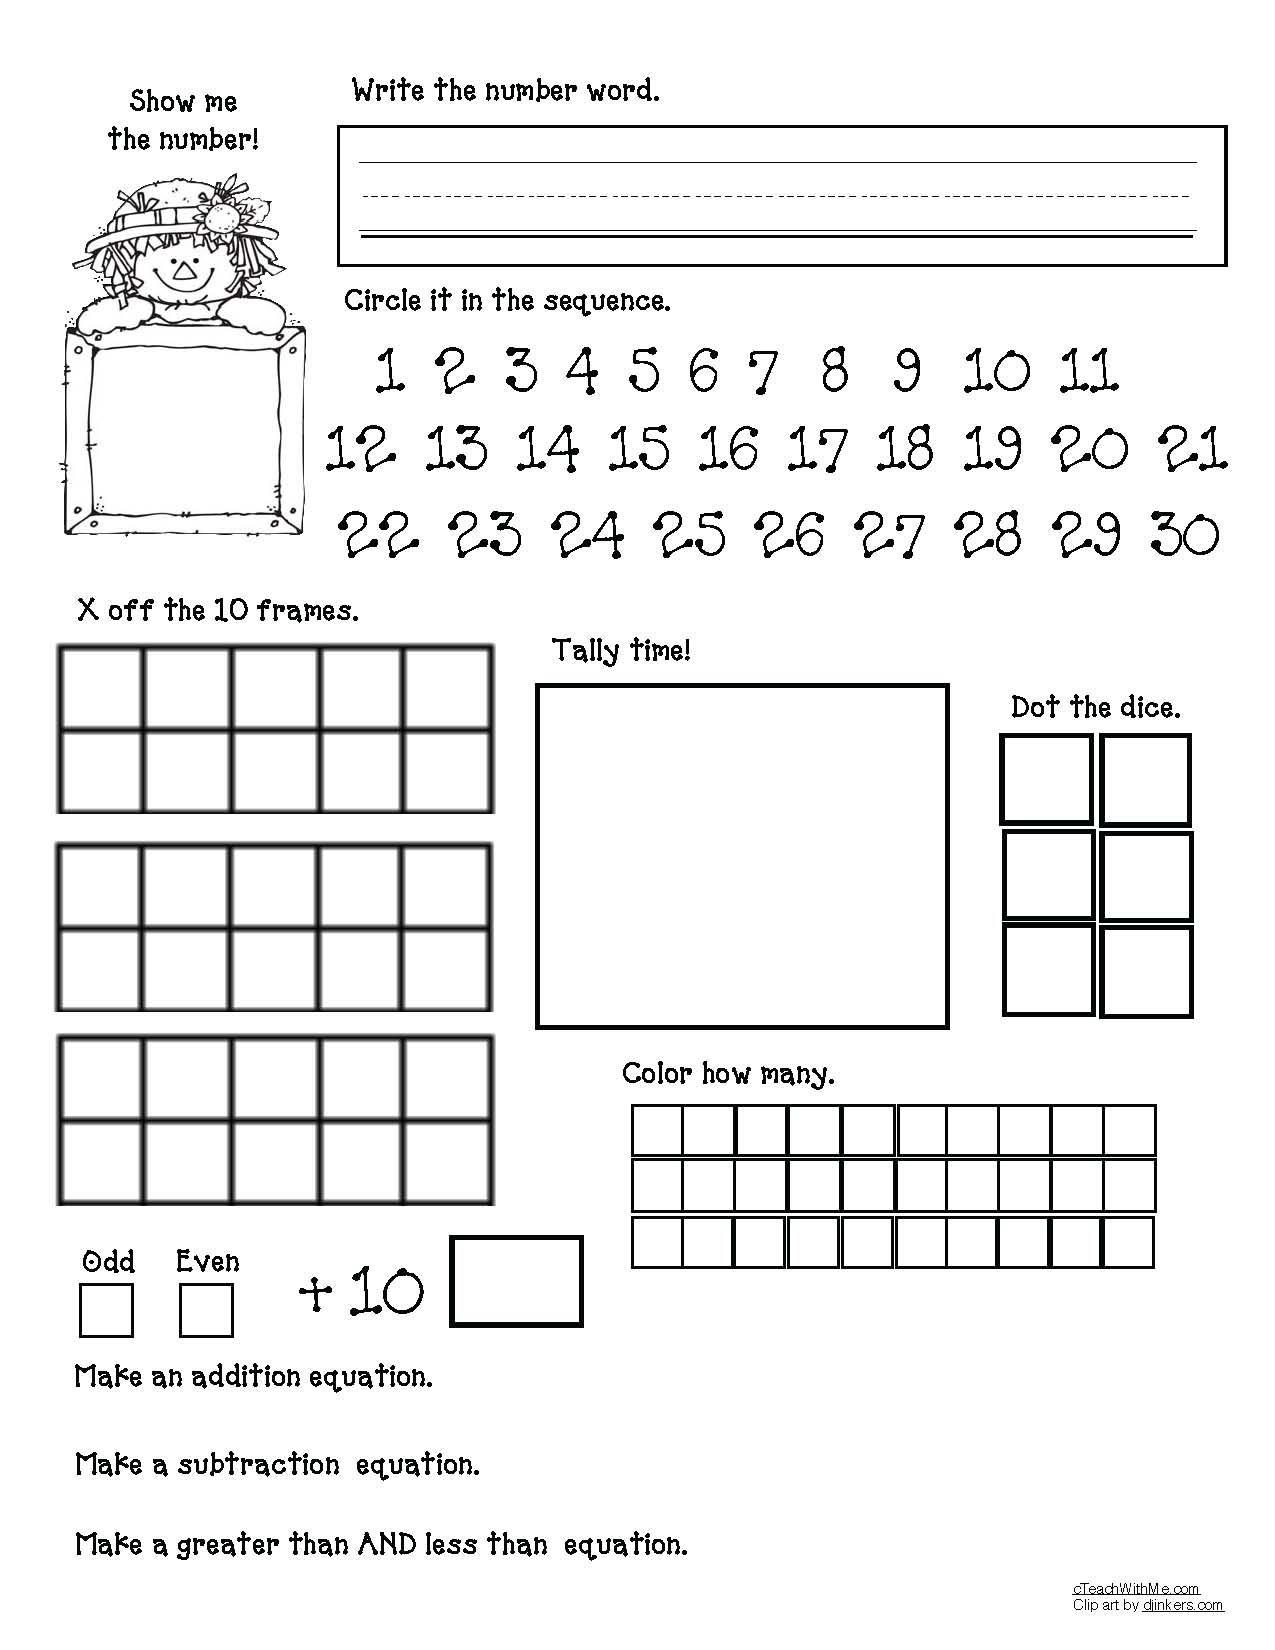 common core math kindergarten, common core math 1st grade, ordinal numbers, skip counting, odd and even, counting to 100, counting to 120, place value activities, fact family activities, Pilgrim activities, turkey activities, math games, 10 frames, thanksgving games